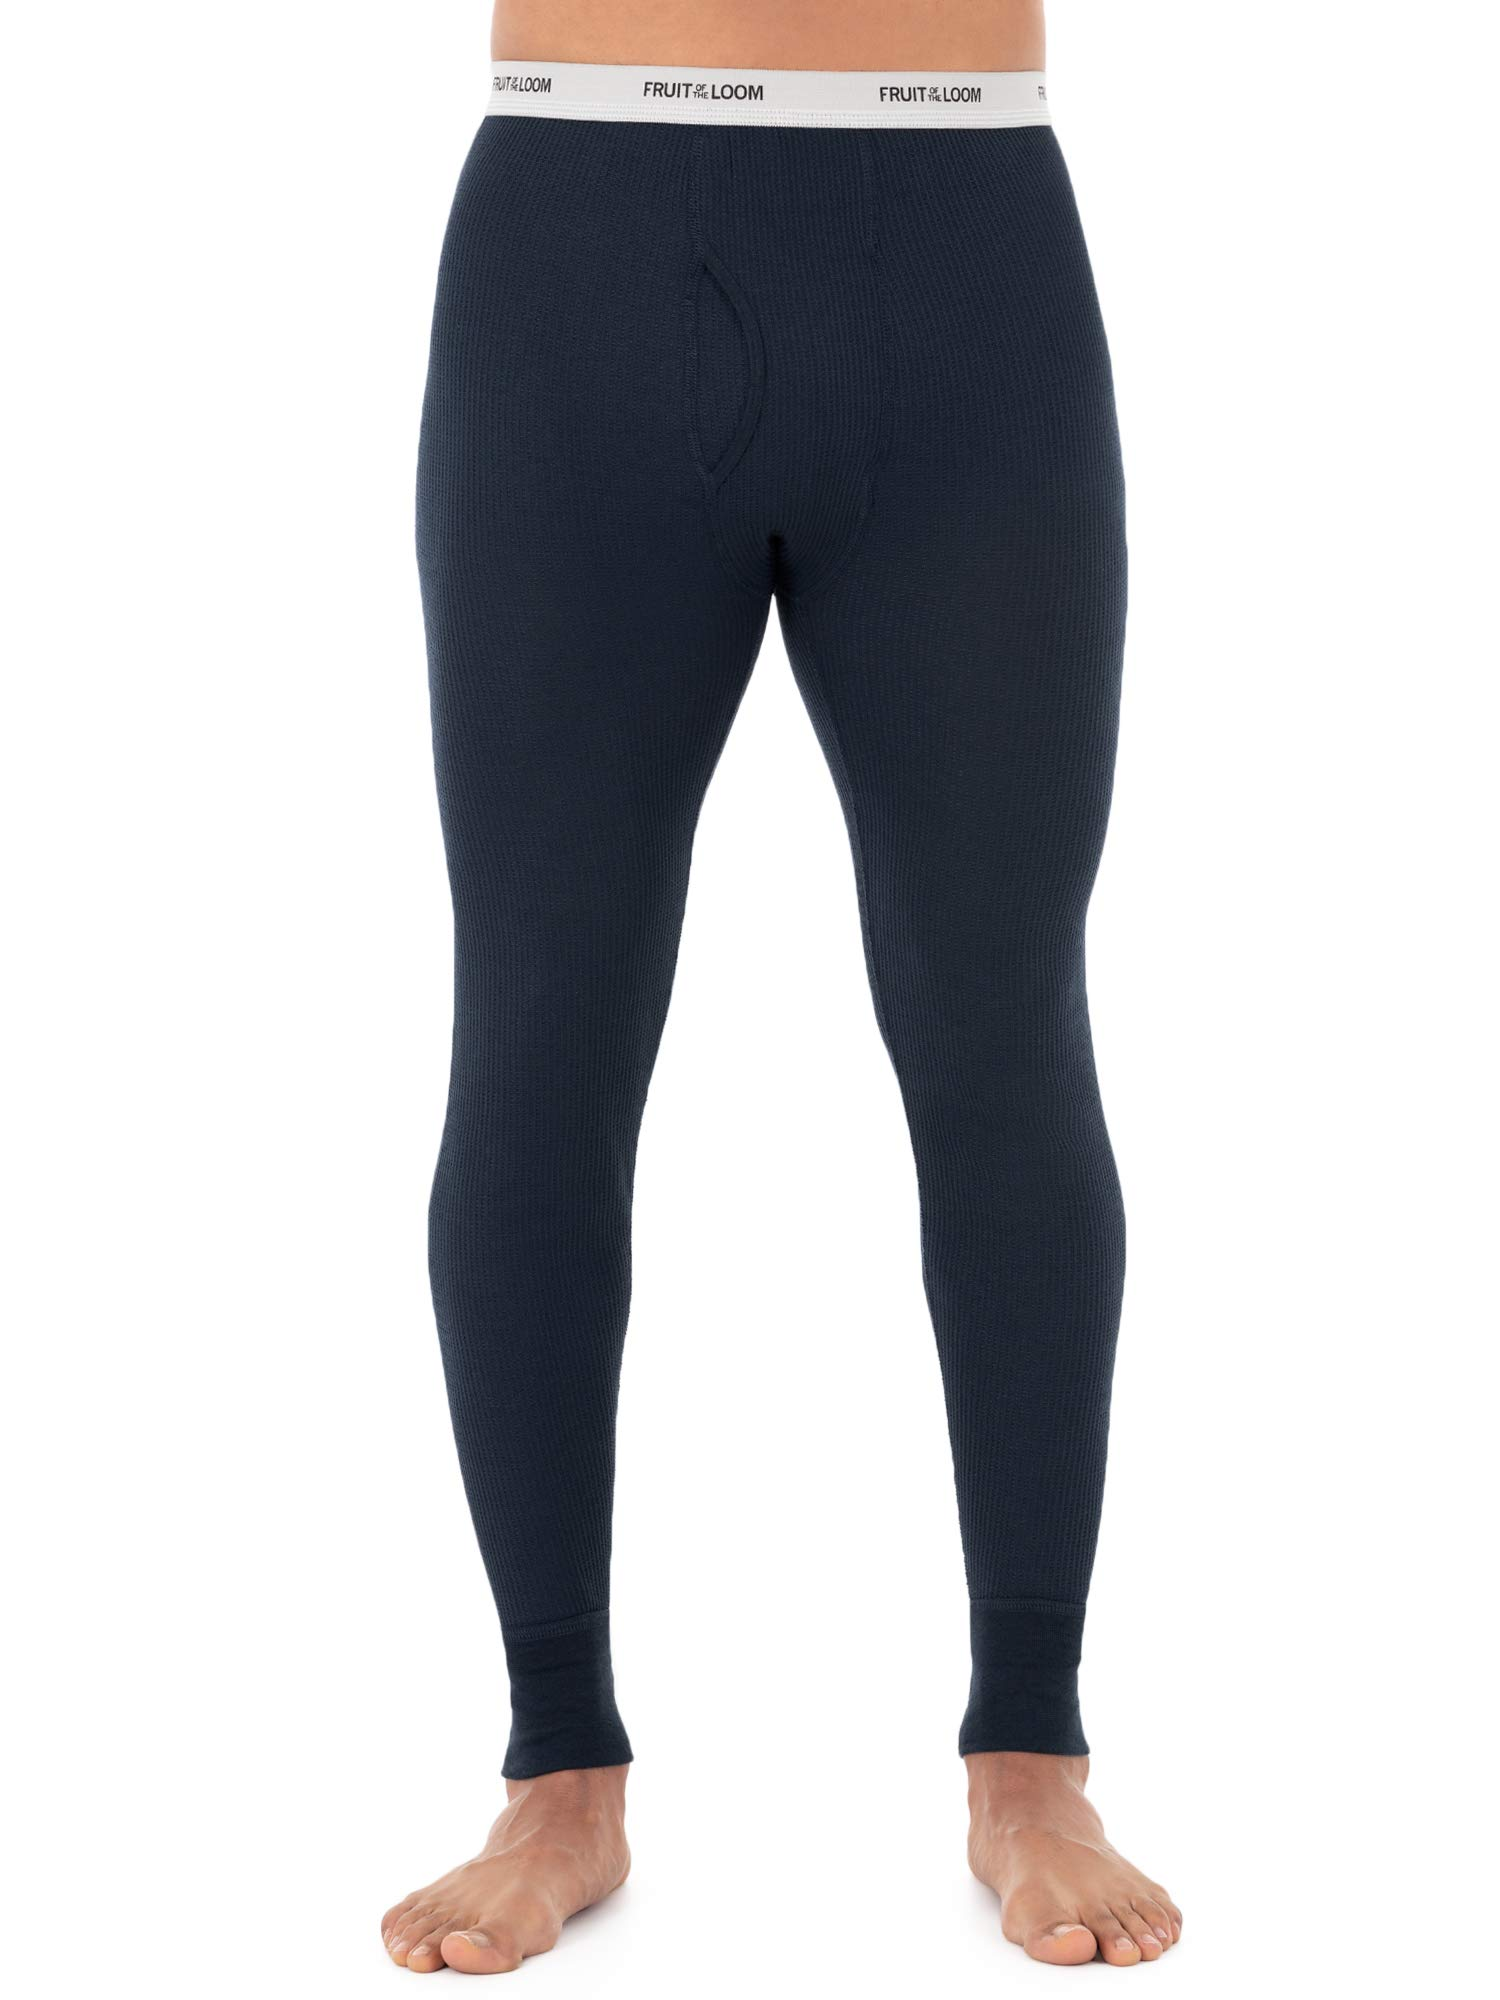 Fruit of the Loom Men's Classic Midweight Waffle Thermal Underwear Bottoms (1 &2 Packs), Navy, 4X-Large by Fruit of the Loom